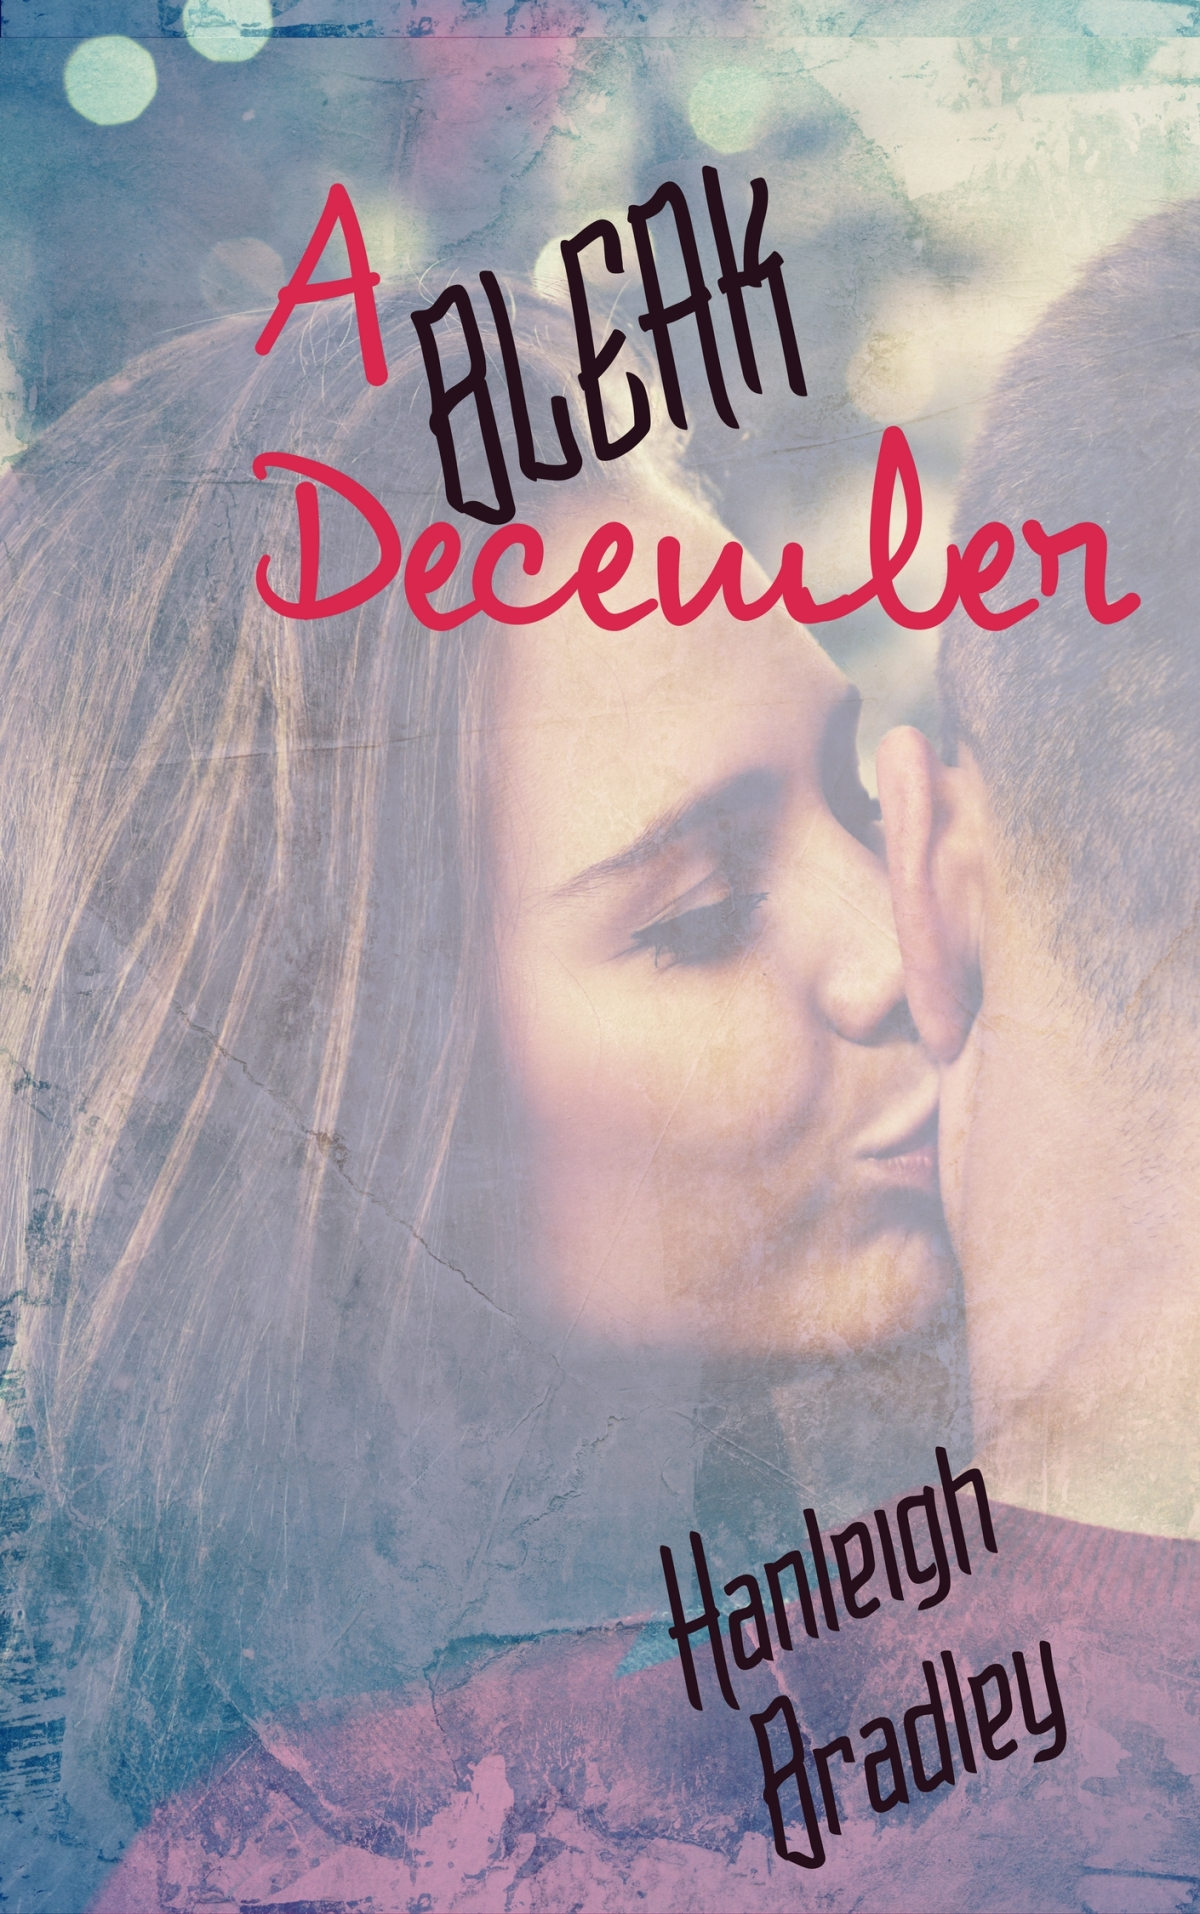 Book Blitz/Release: A Bleak December by Author Hanleigh Bradley